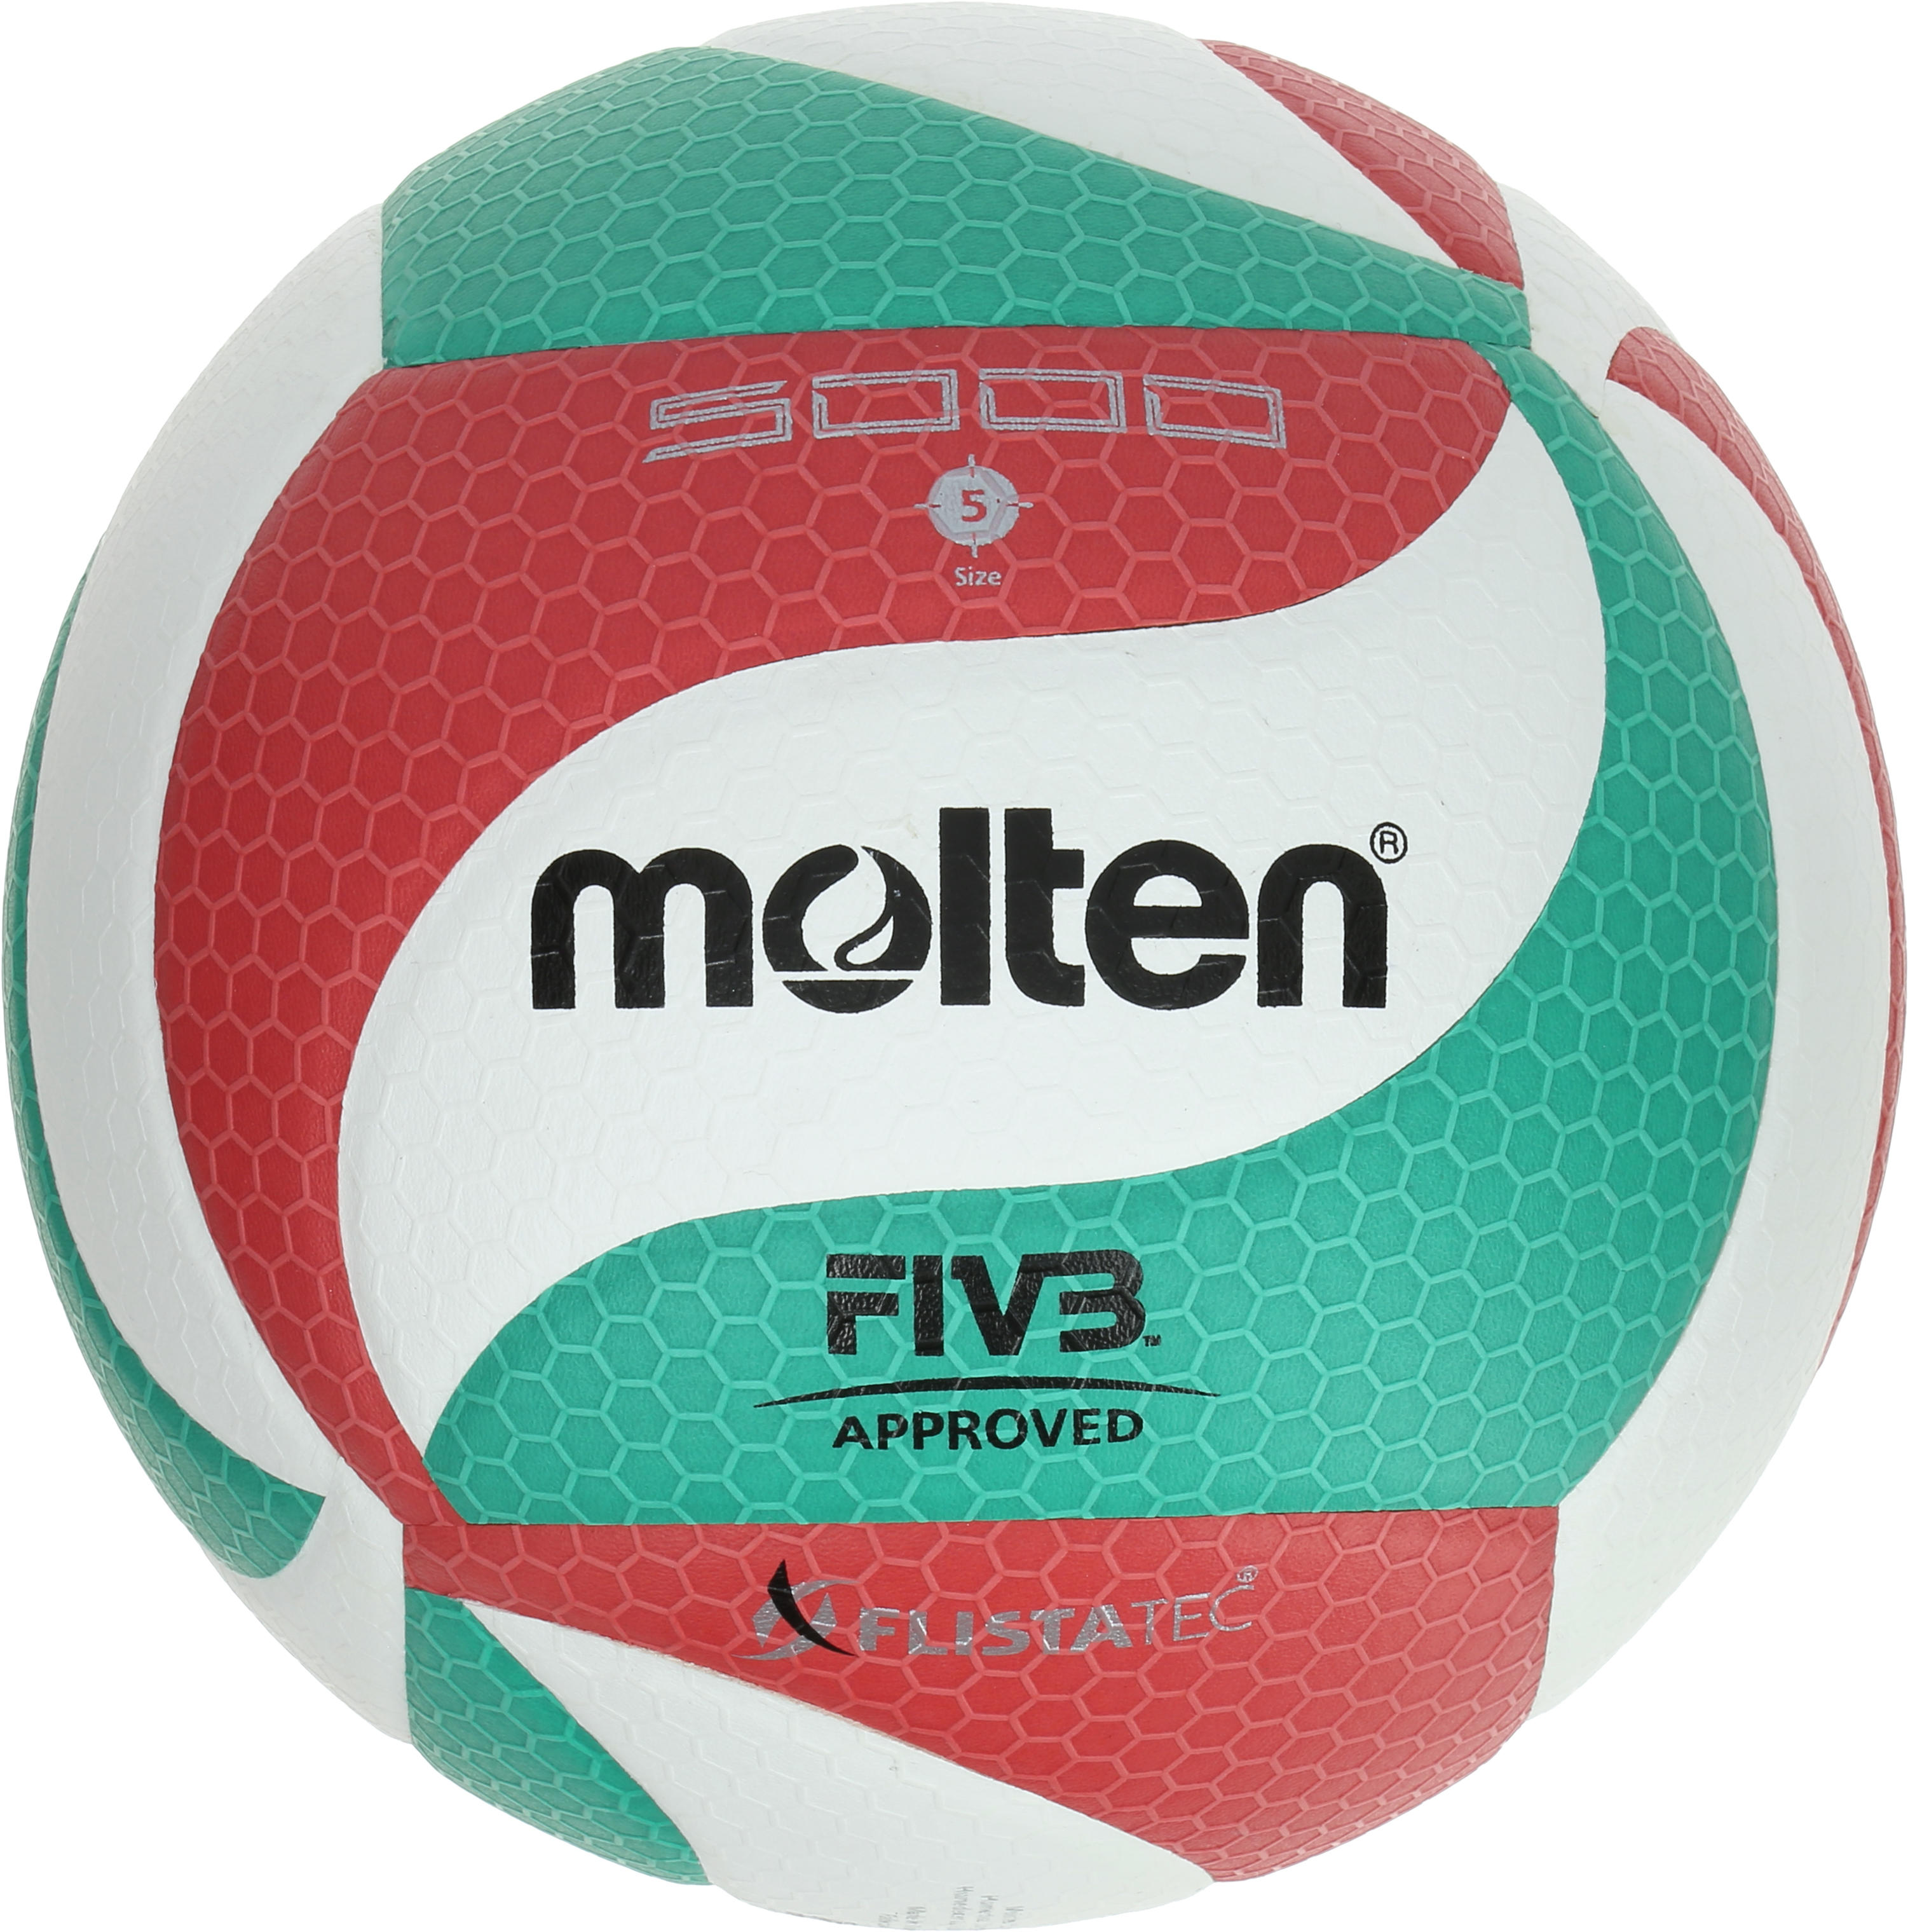 Minge Volei Molten 5000 imagine